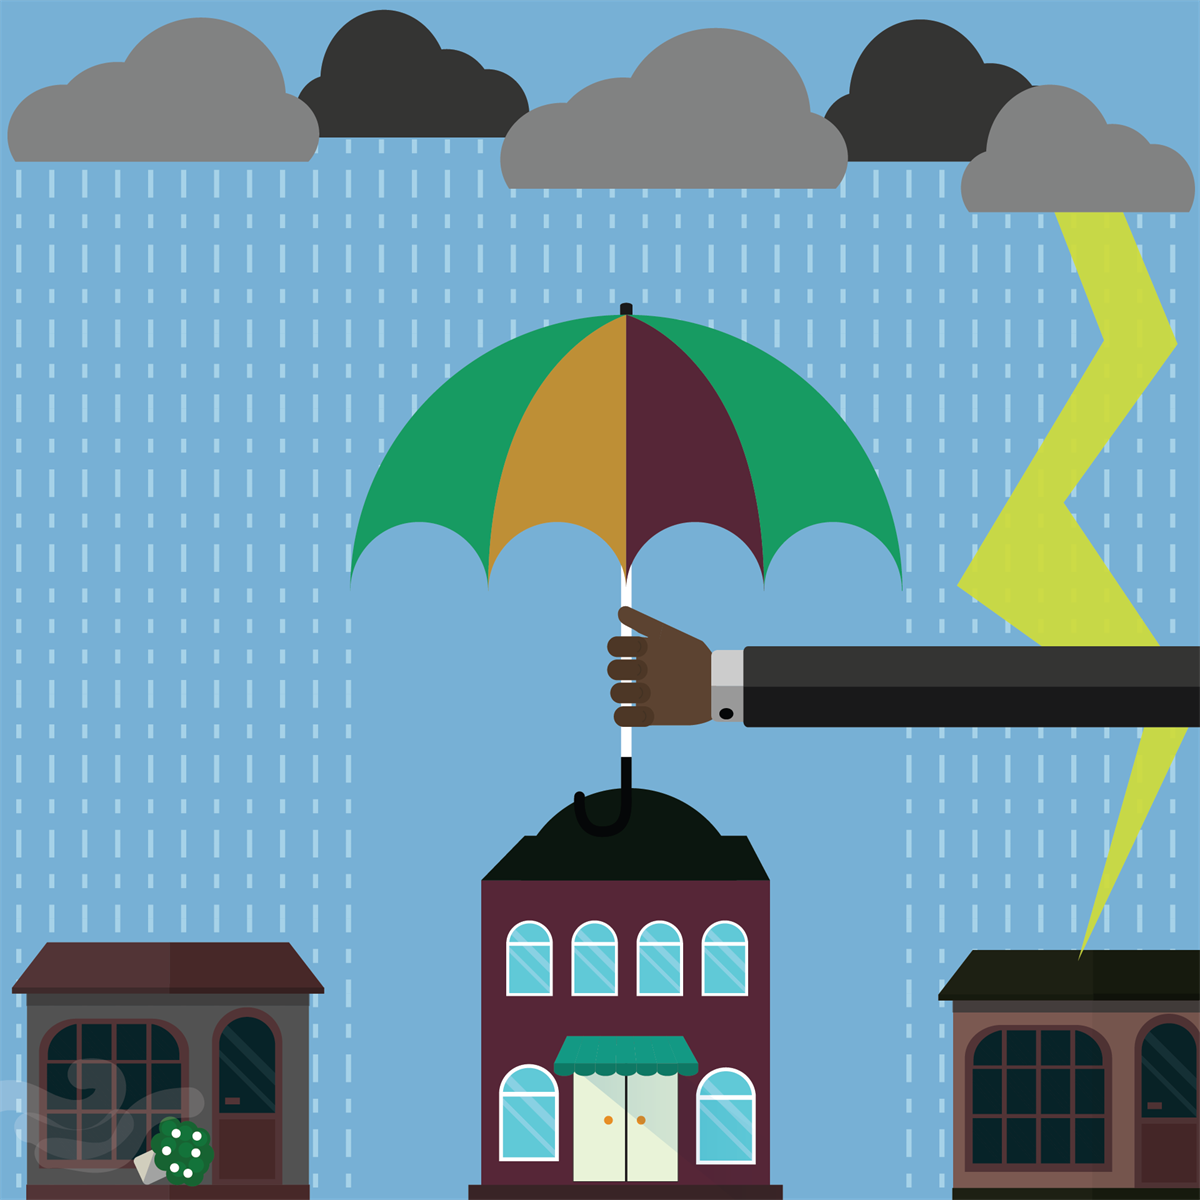 Umbrella Insurance for Your Business and Peace of Mind